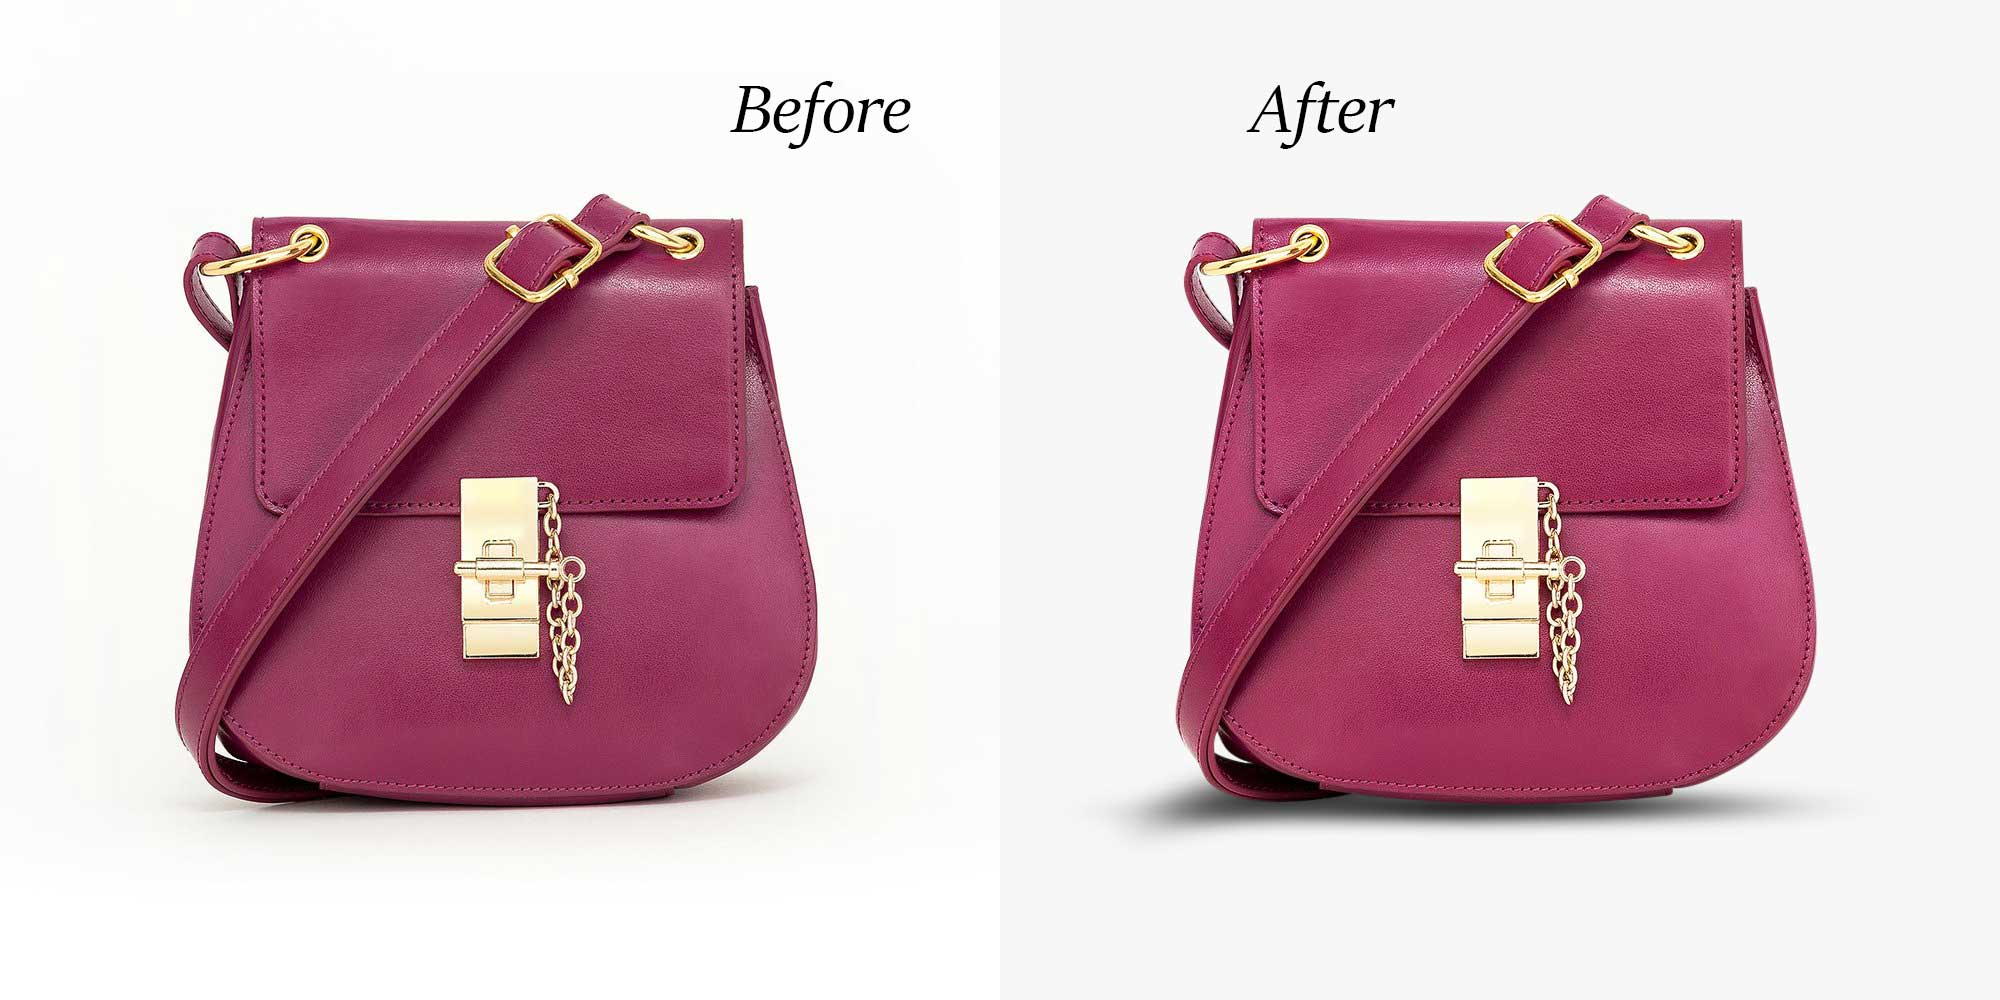 product photo editing3- Clipping path graphics